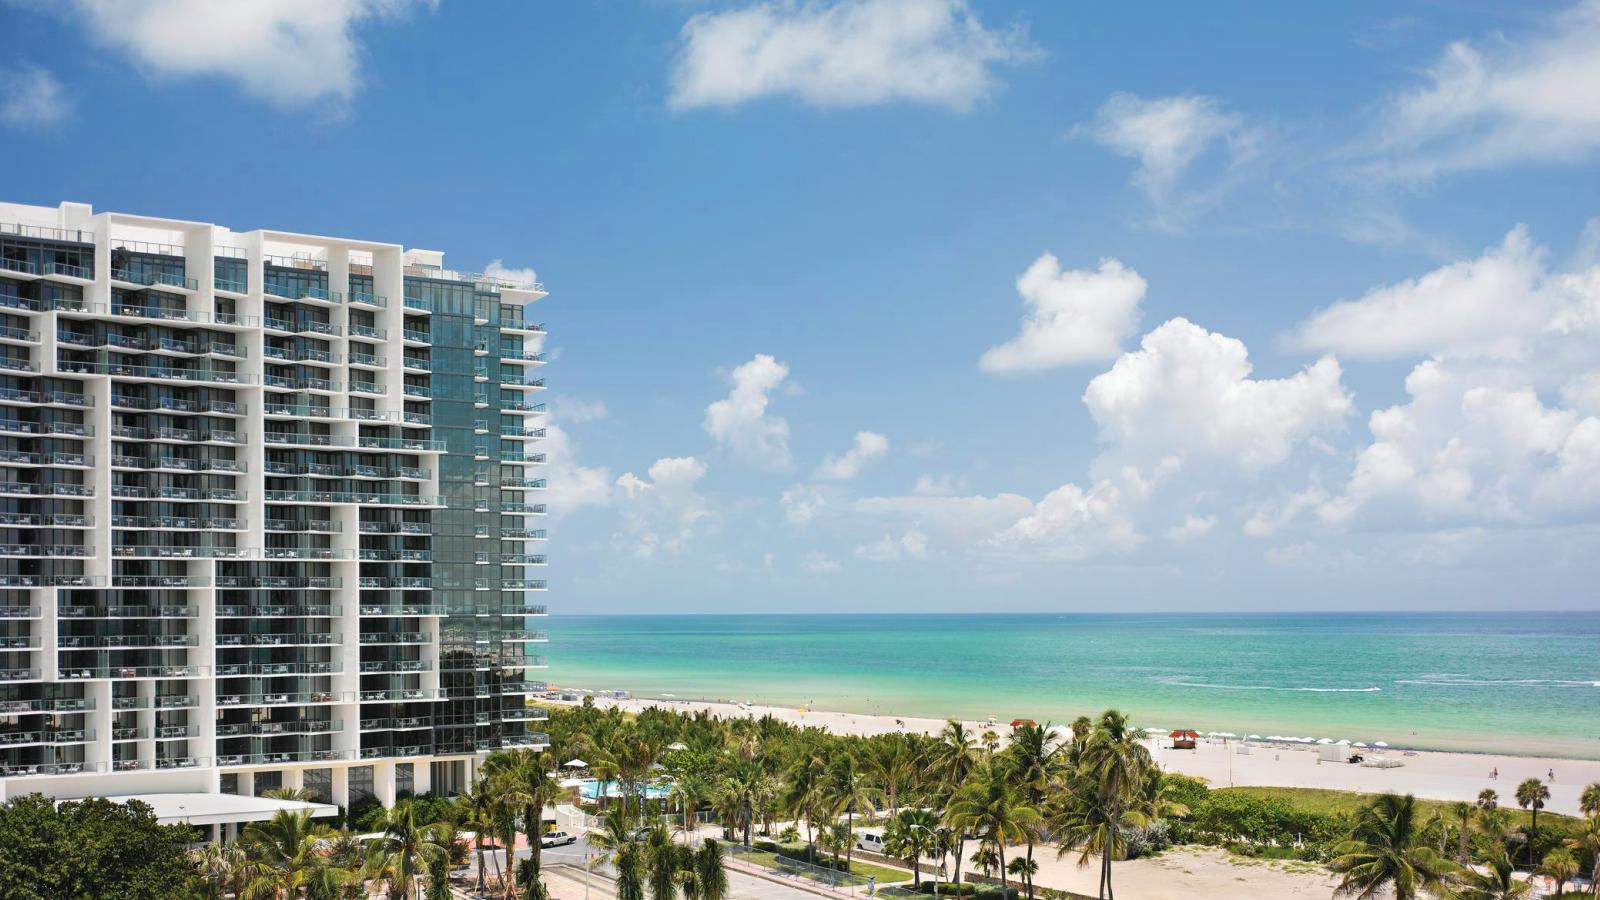 Things To Do In Downtown Miami W South Beach